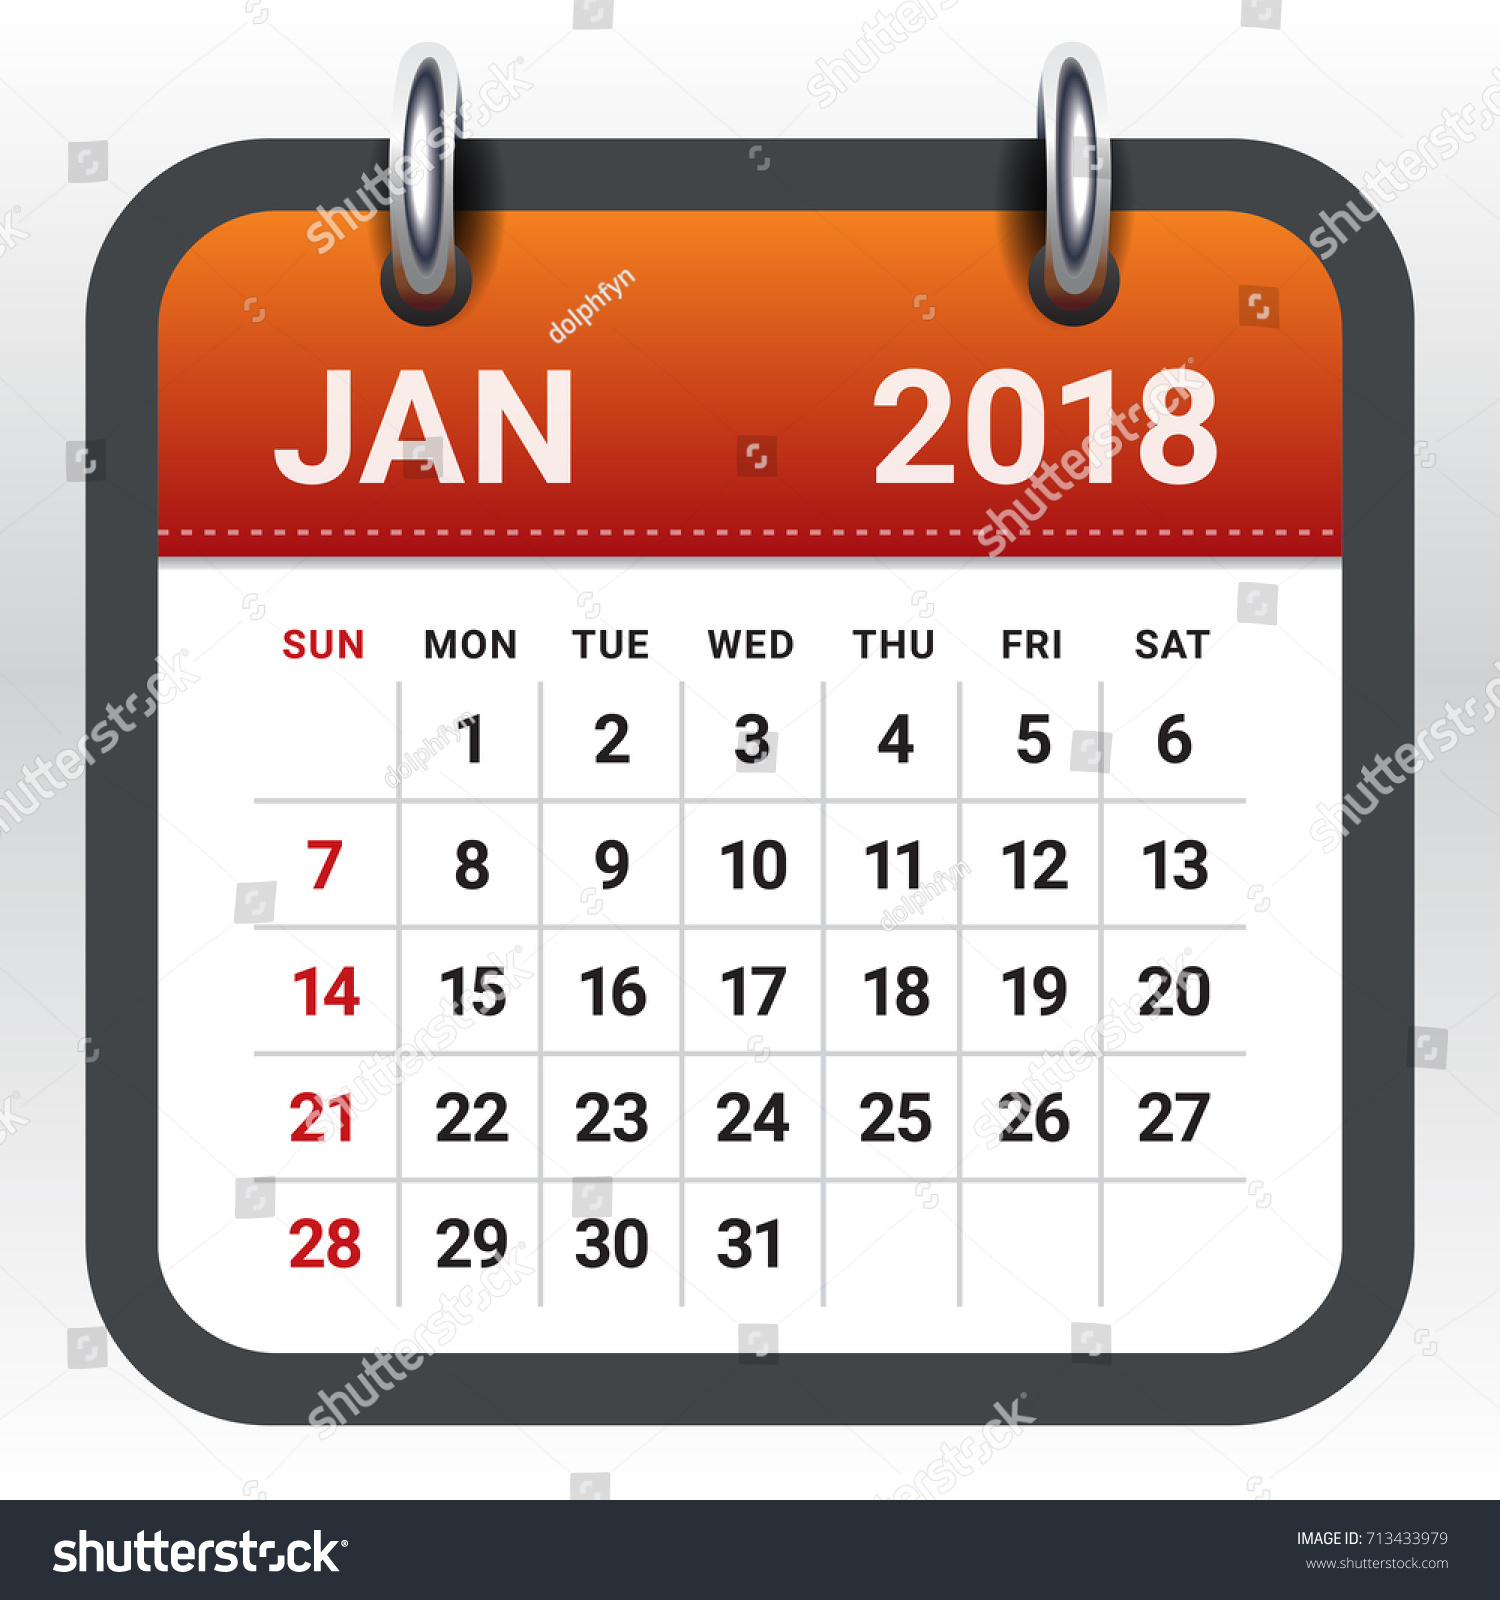 january 2018 calendar vector illustration simple and clean design